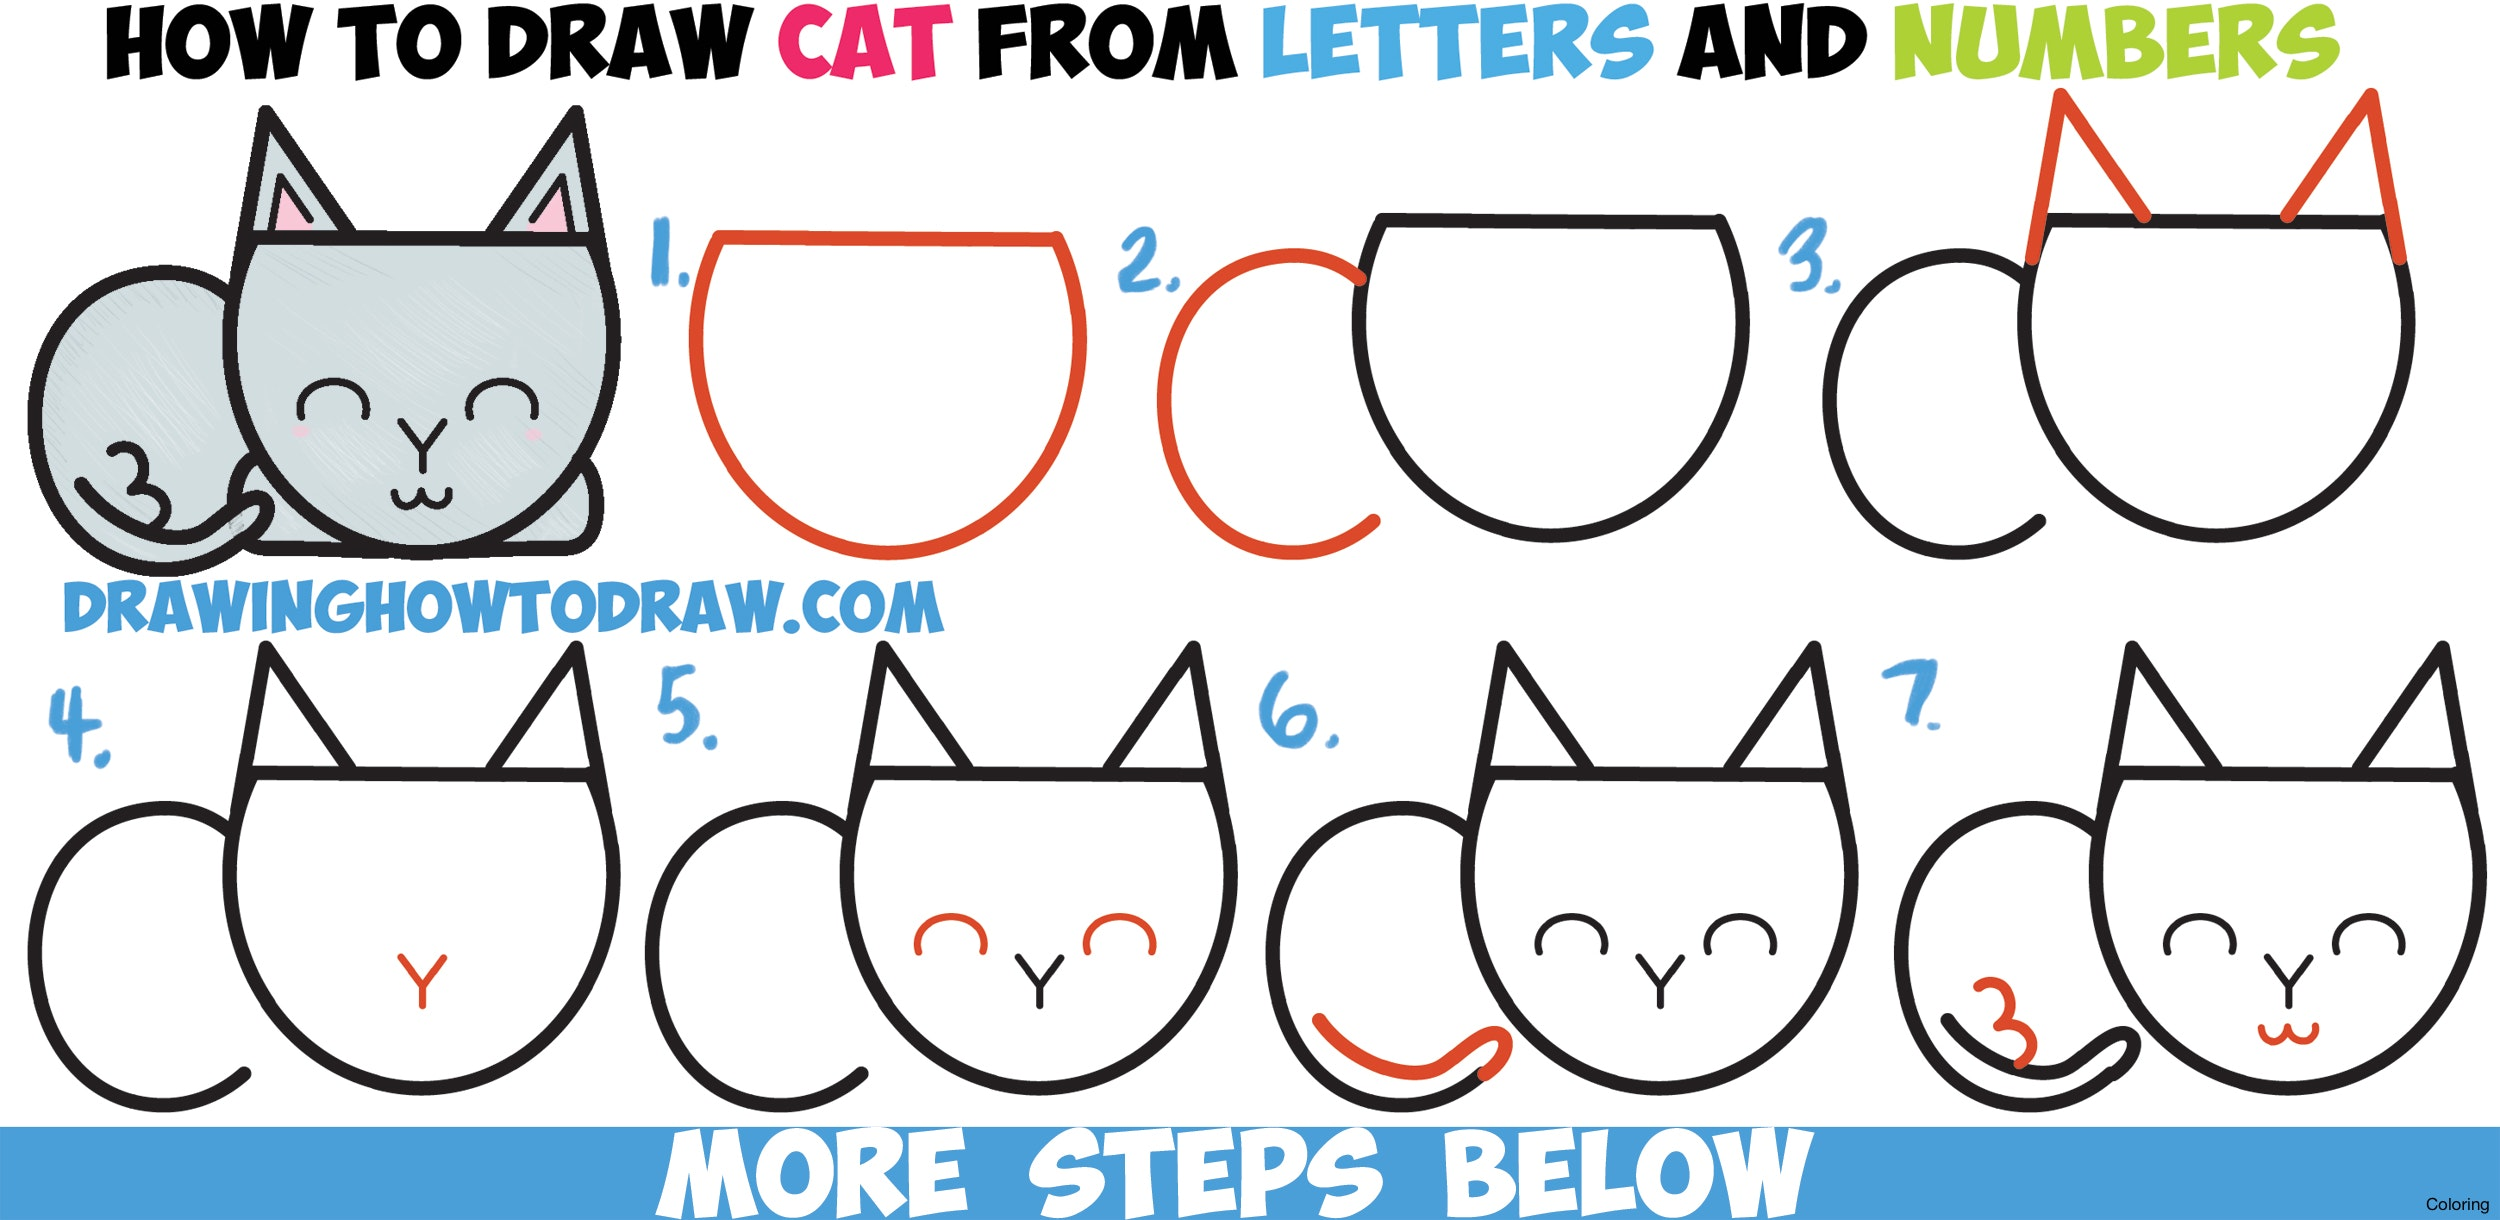 Easy cat drawing steps at getdrawings free for personal use 2500x1220 draw cats done 4 how to a cat coloring 3f cute anime wikihow diaiz thecheapjerseys Gallery